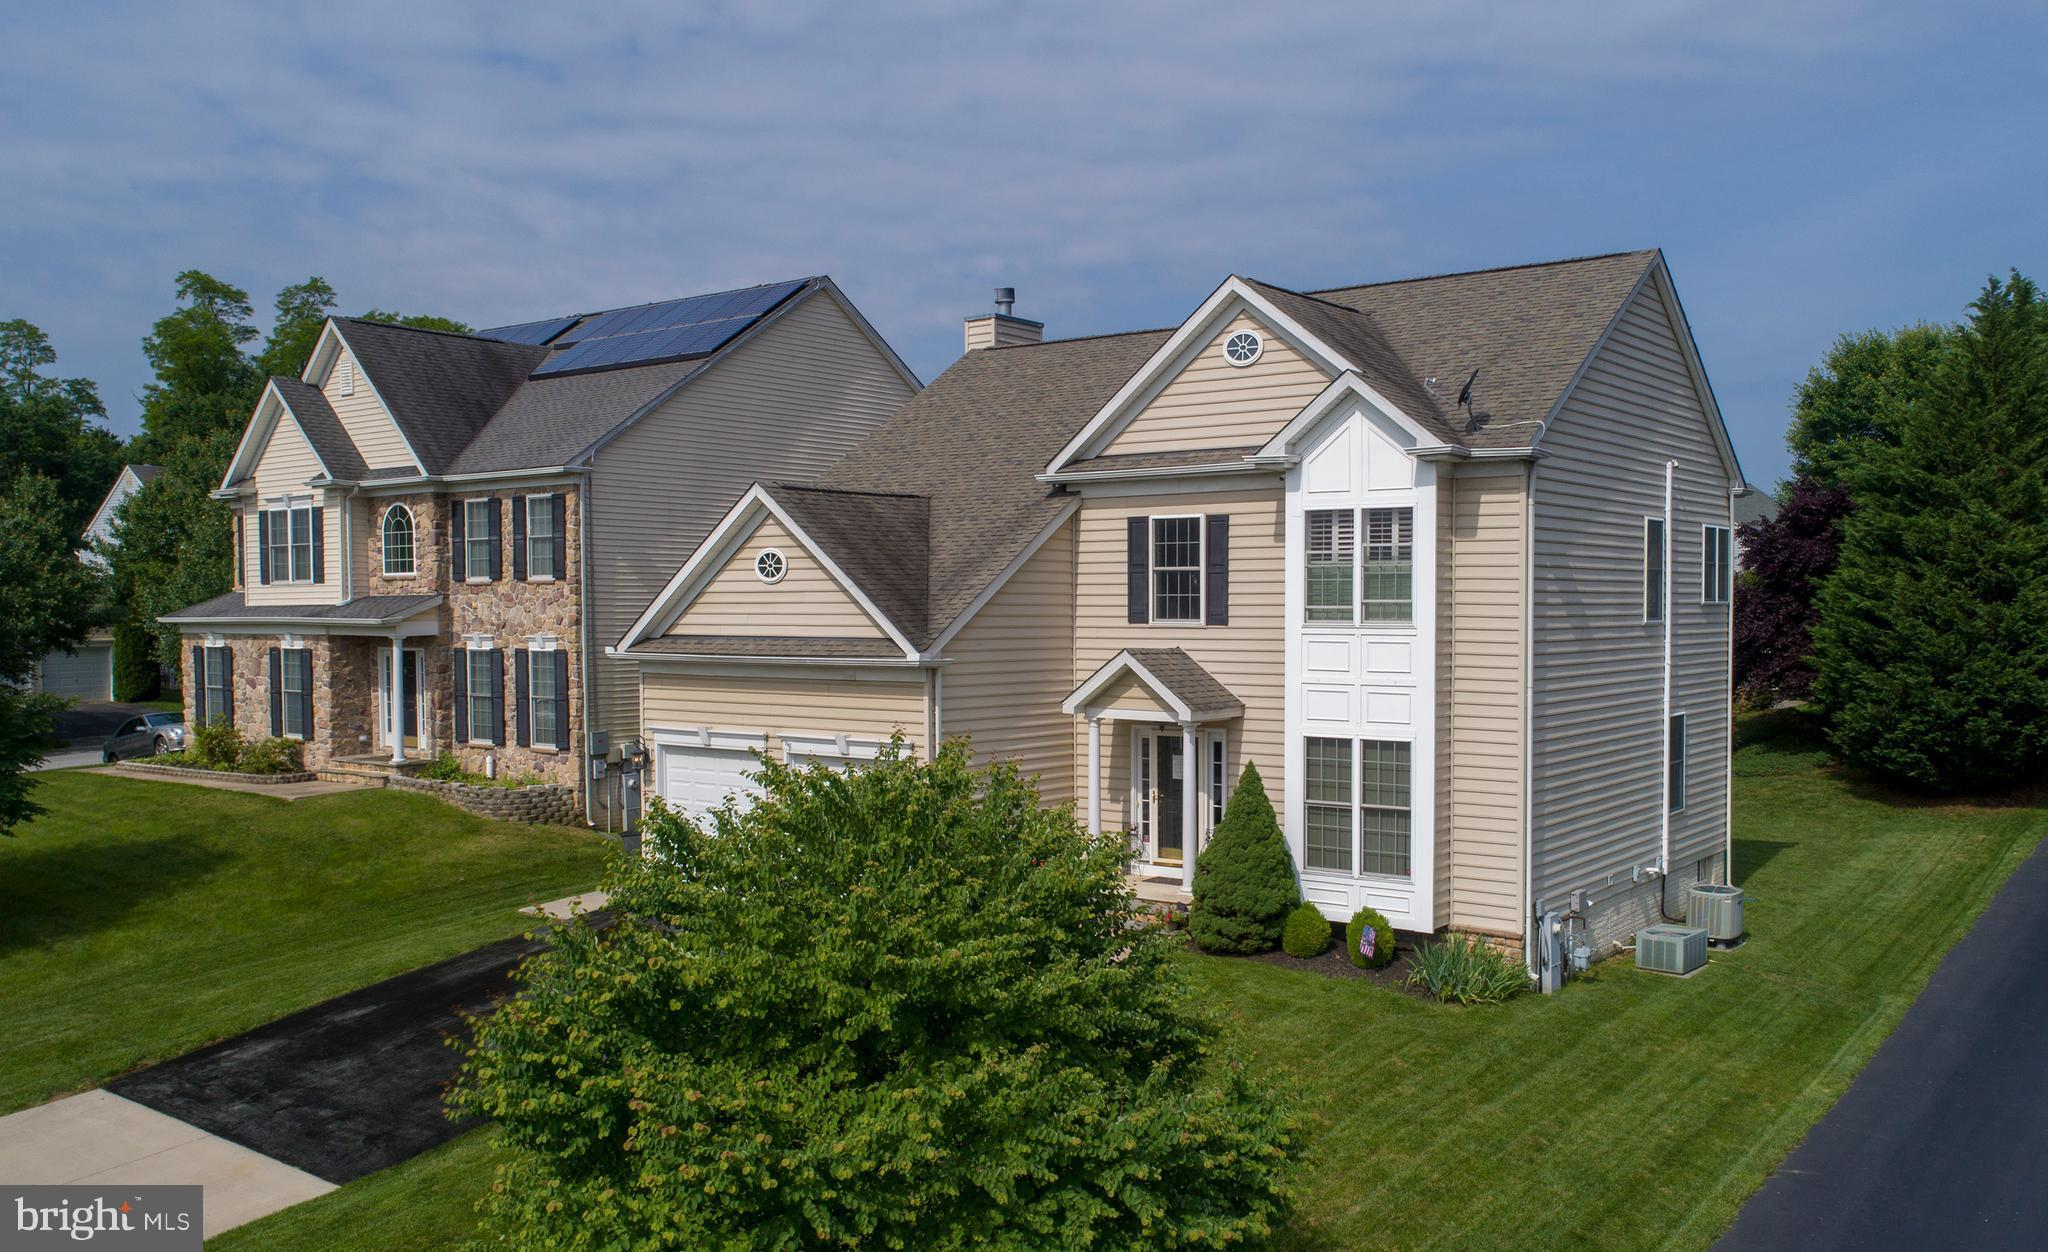 2105 CHAUCER WAY, WOODSTOCK, MD 21163